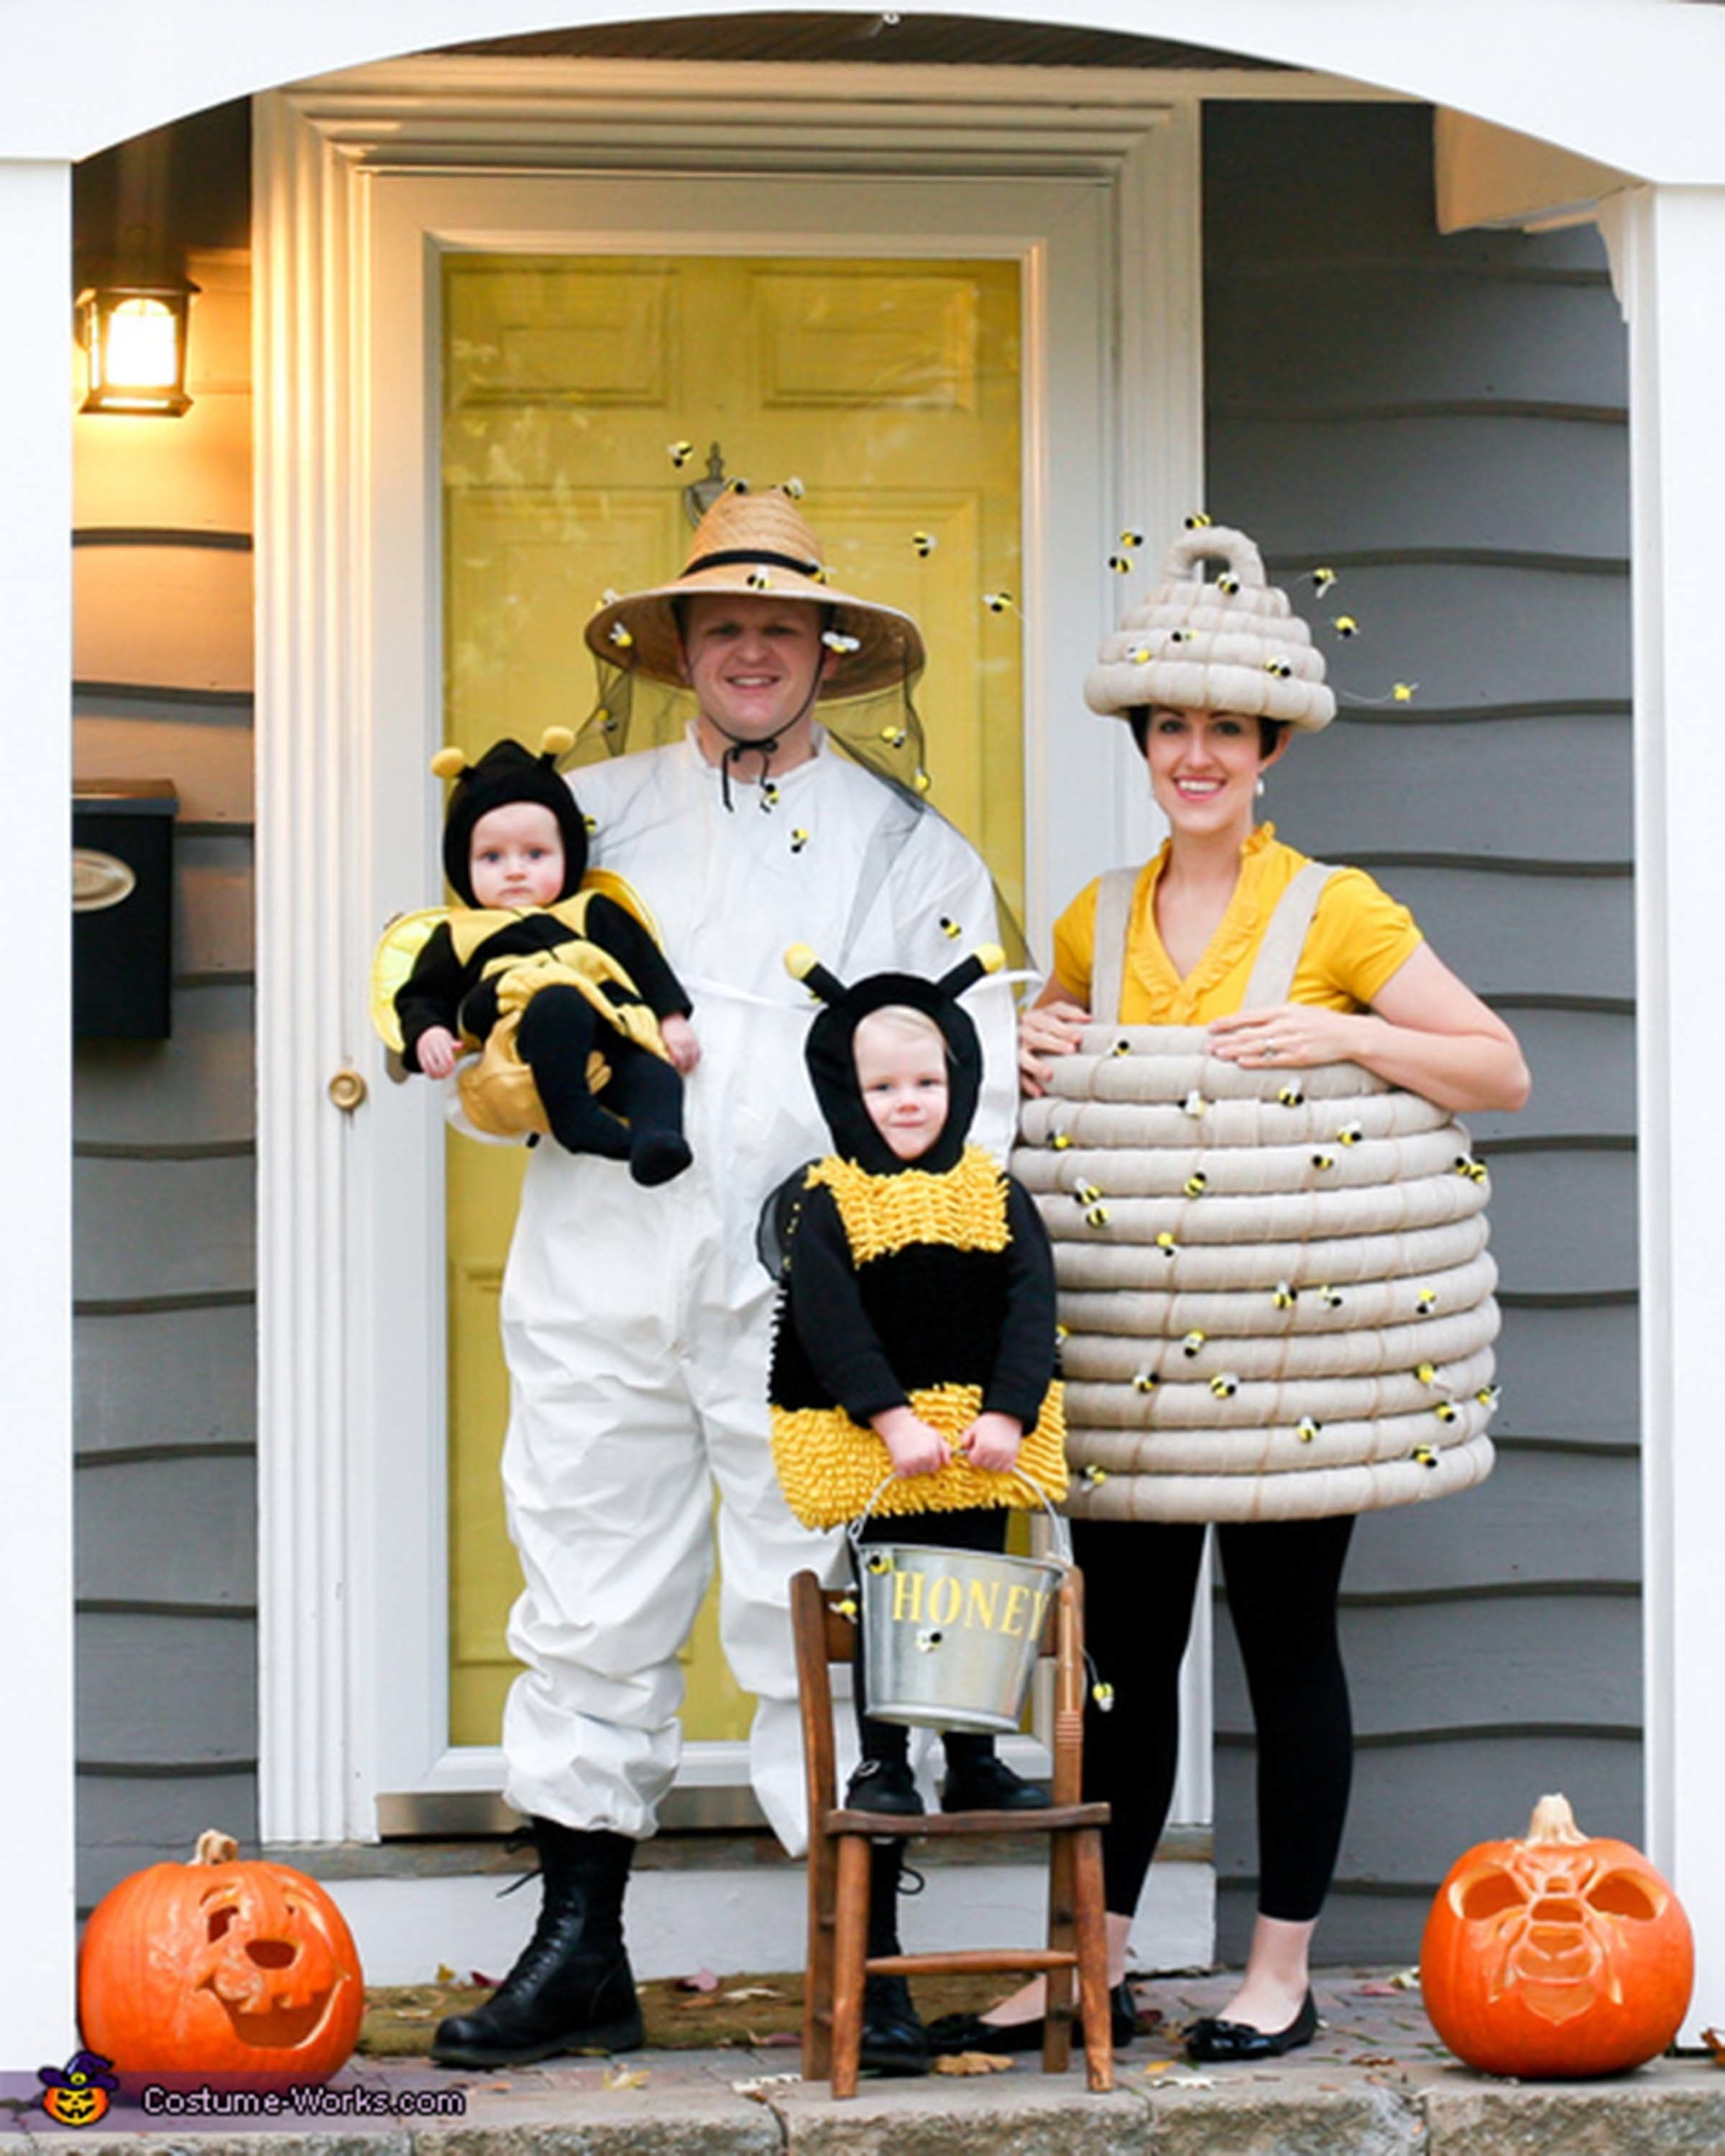 """Via <a href=""""http://www.costume-works.com/costumes_for_families/beehive-and-beekeeper.html"""" target=""""_blank"""">Costume Works</a>"""